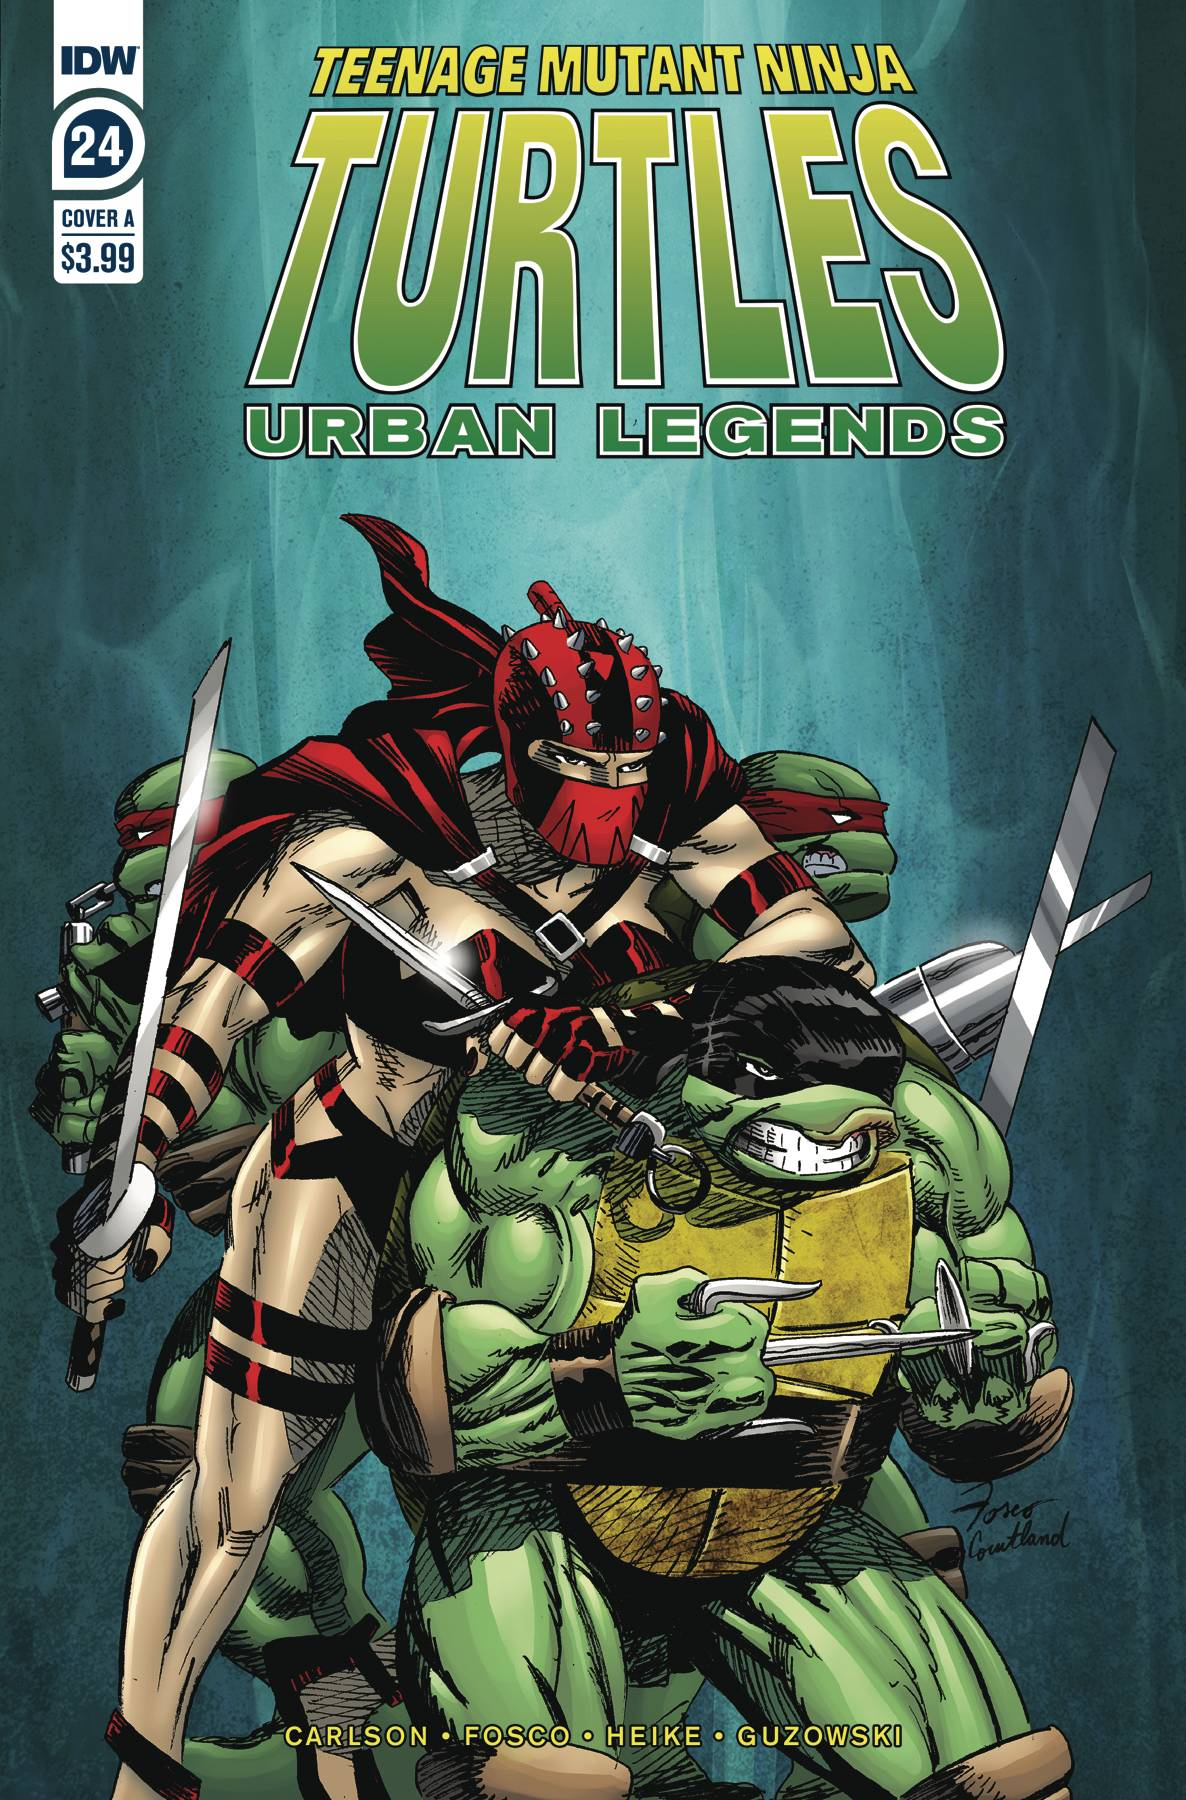 Teenage Mutant Ninja Turtles Urban Legends #24